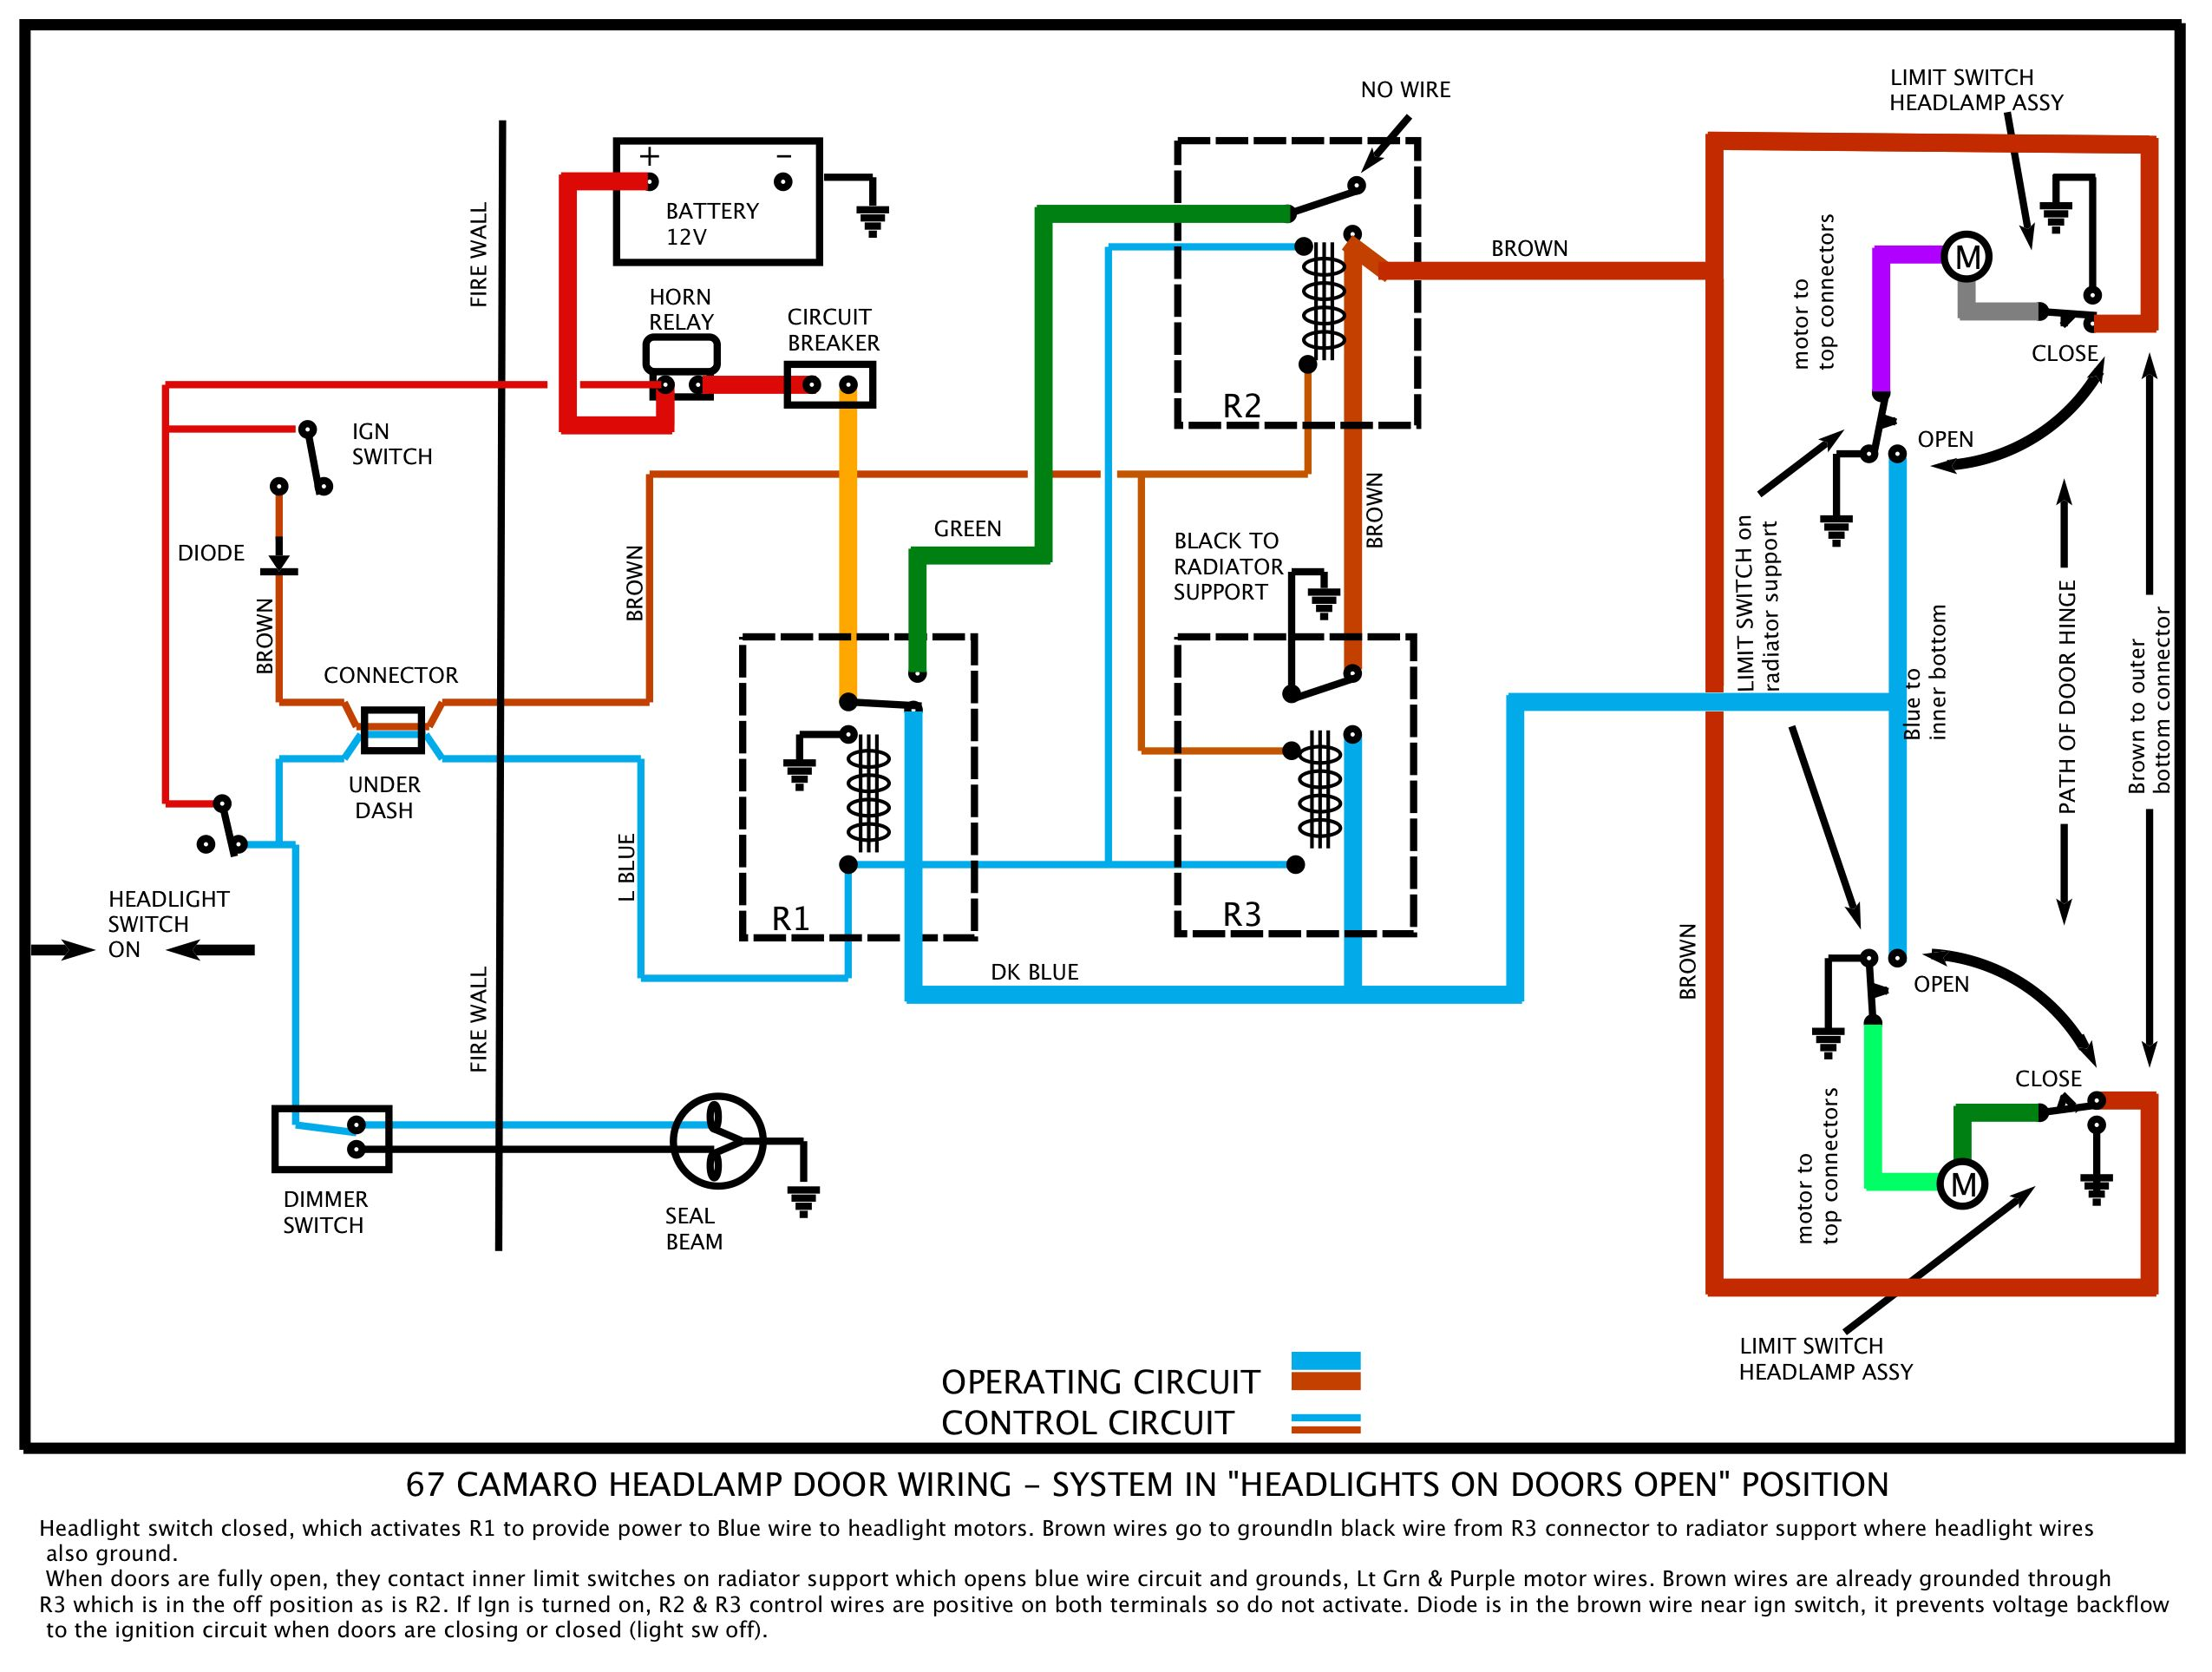 headlight dimmer switch wiring diagram headlight 67 rs headlight doors on headlight dimmer switch wiring diagram